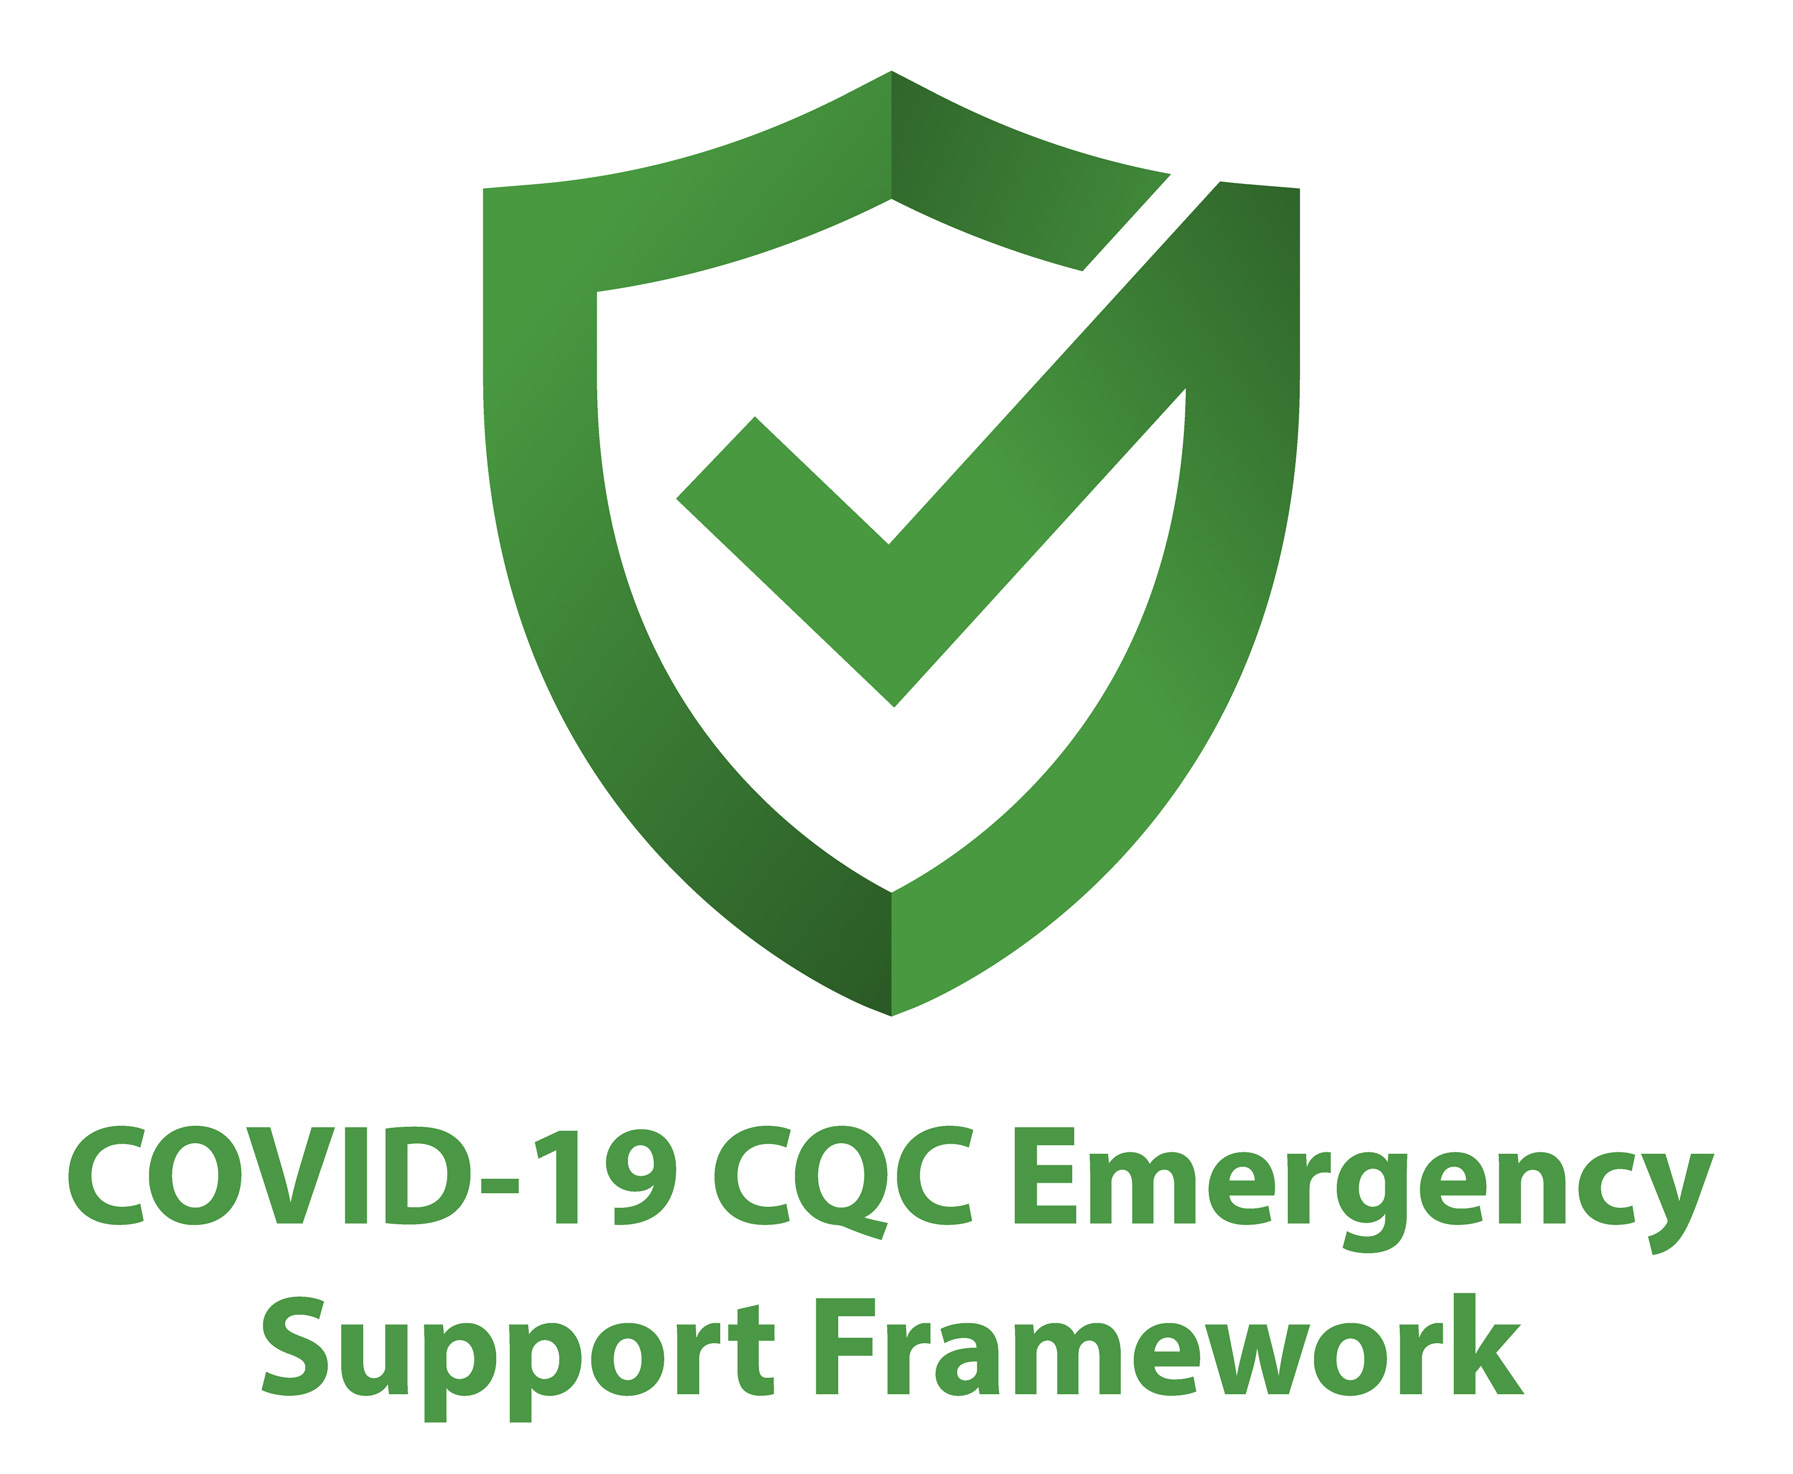 CQC Emergency Support Framework